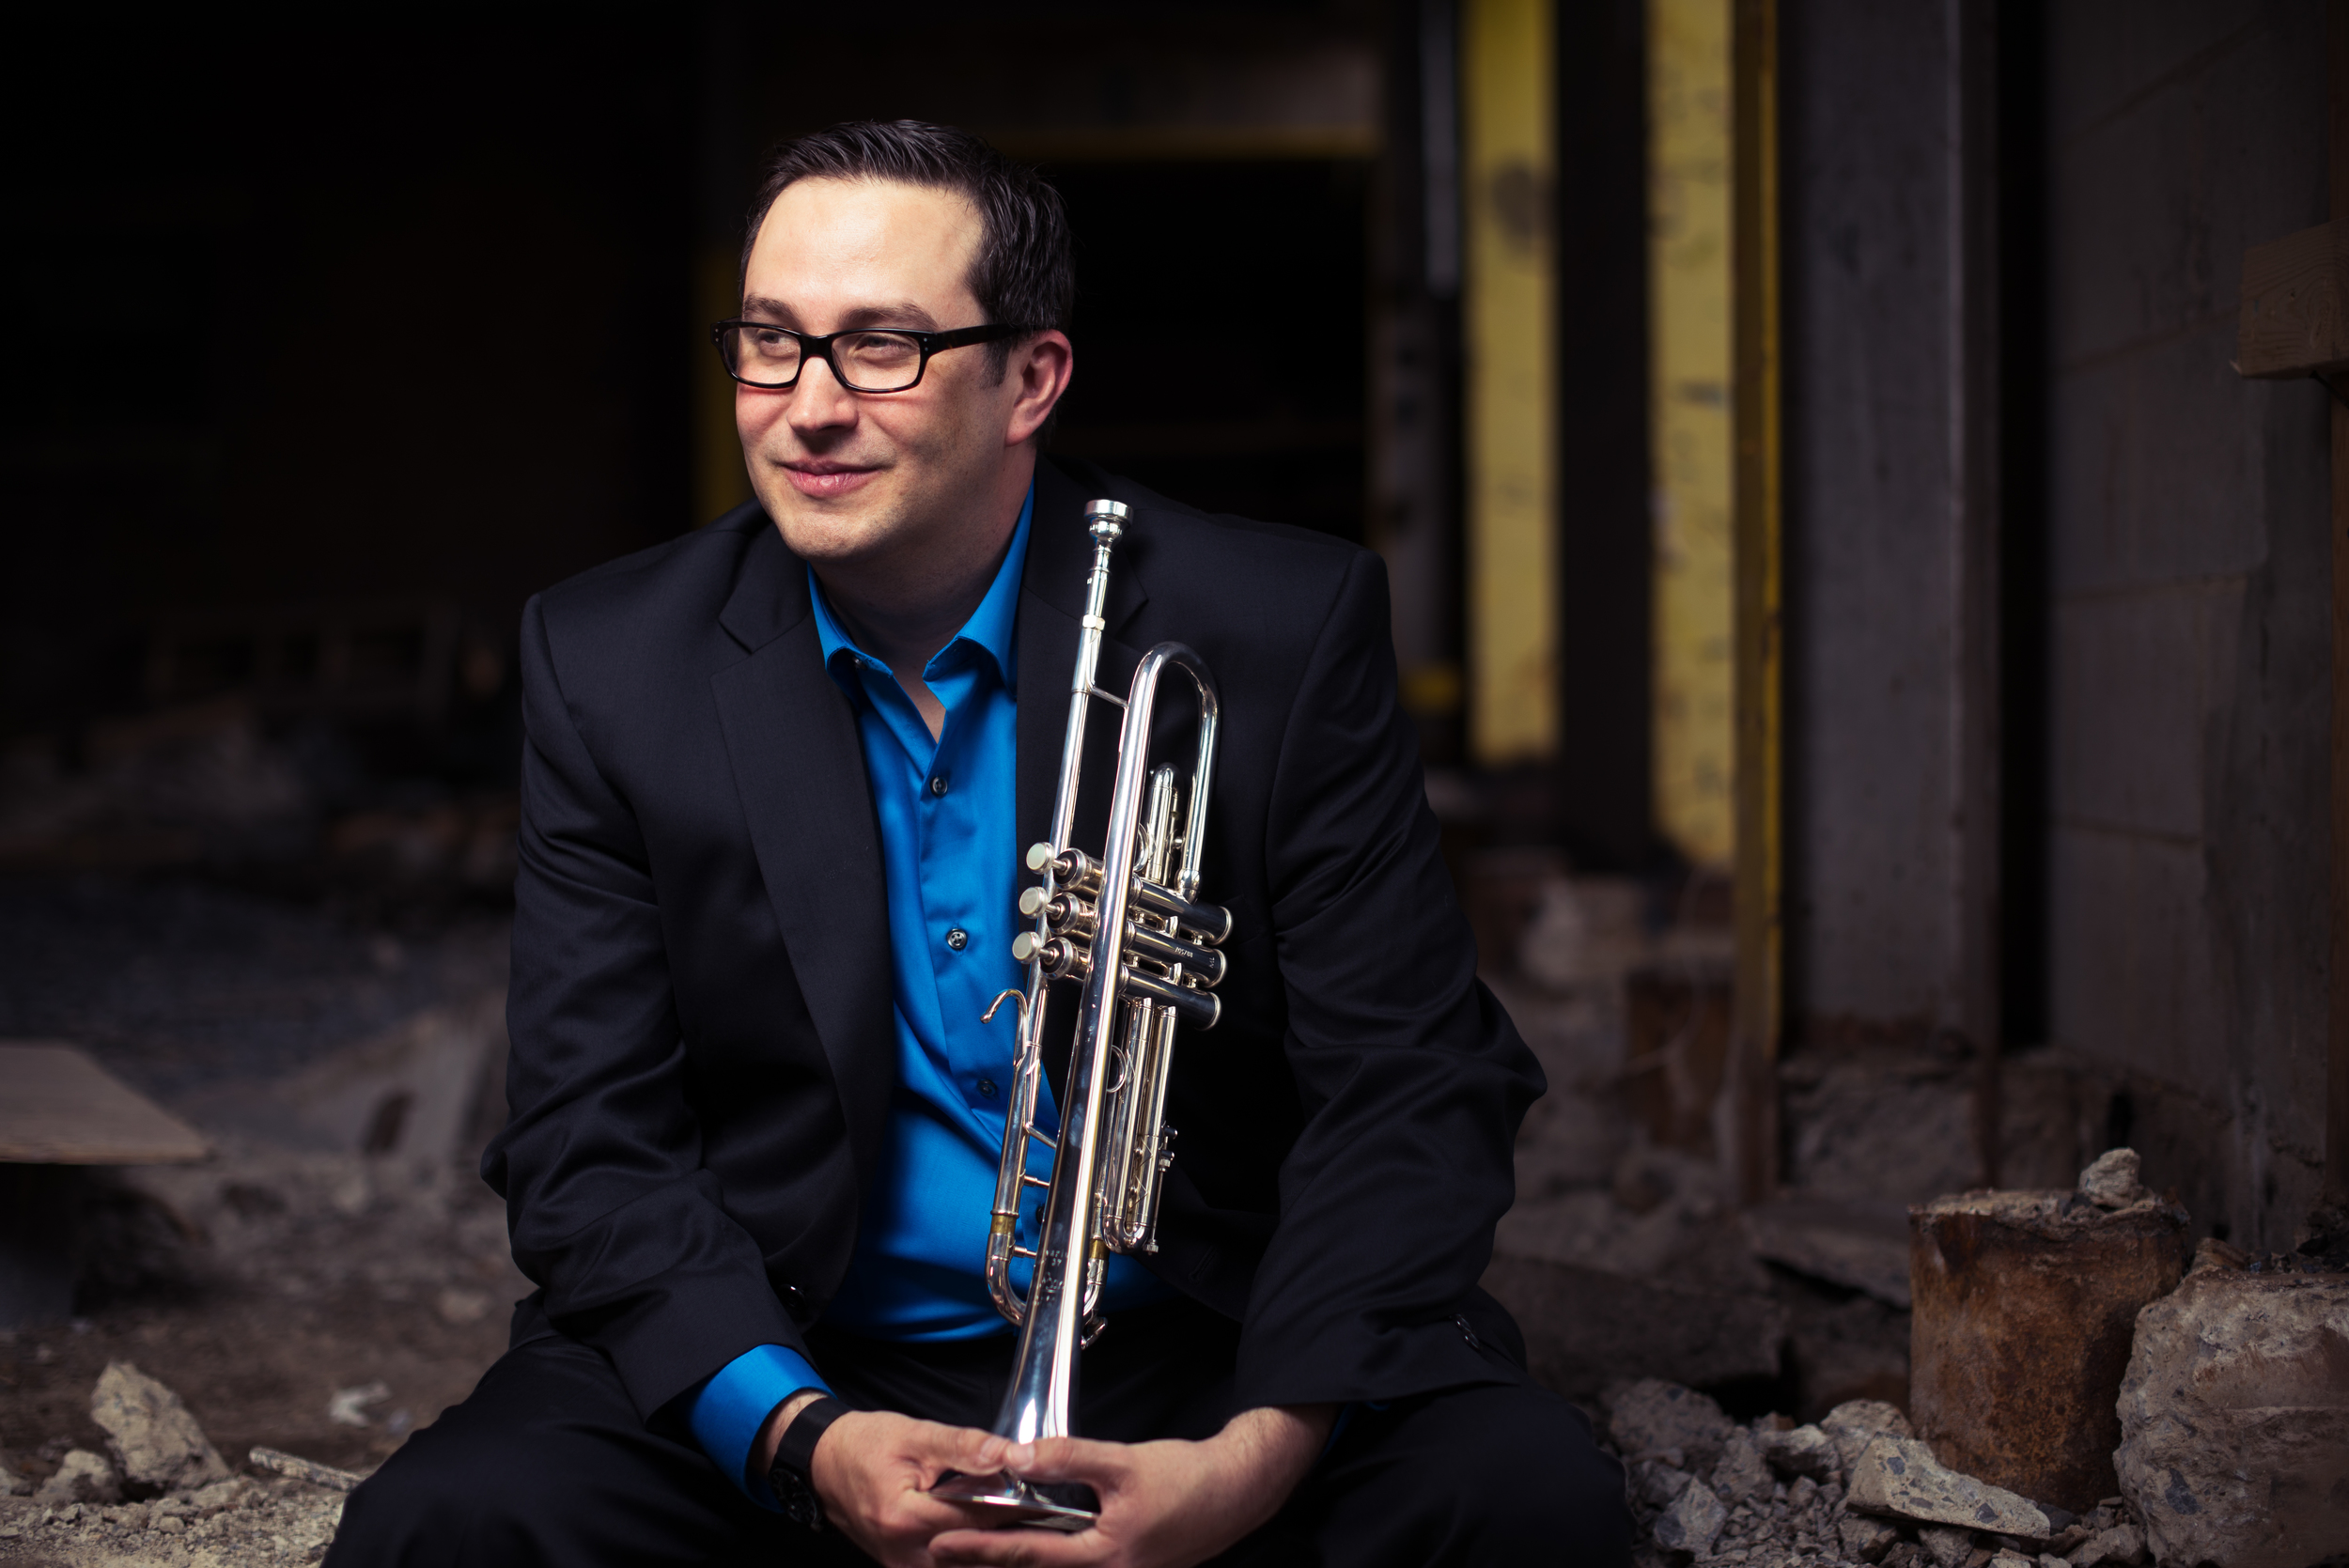 Chris Carrillo , trumpet  Chris Carrillo joined the  faculty of James Madison University  in 2009 as the studio trumpet professor in the College of Visual and Performing Arts. He currently performs with the Madison Brass and the  New Orchestra of Washington . Solo engagements and chamber collaborations have taken him throughout the United States, Australia, Germany, and the United Kingdom performing in some of the world's finest concert halls including Carnegie Hall in New York City, the Kennedy Center for the Performing Arts in Washington, D.C., and City Recital Hall in Sydney, Australia.